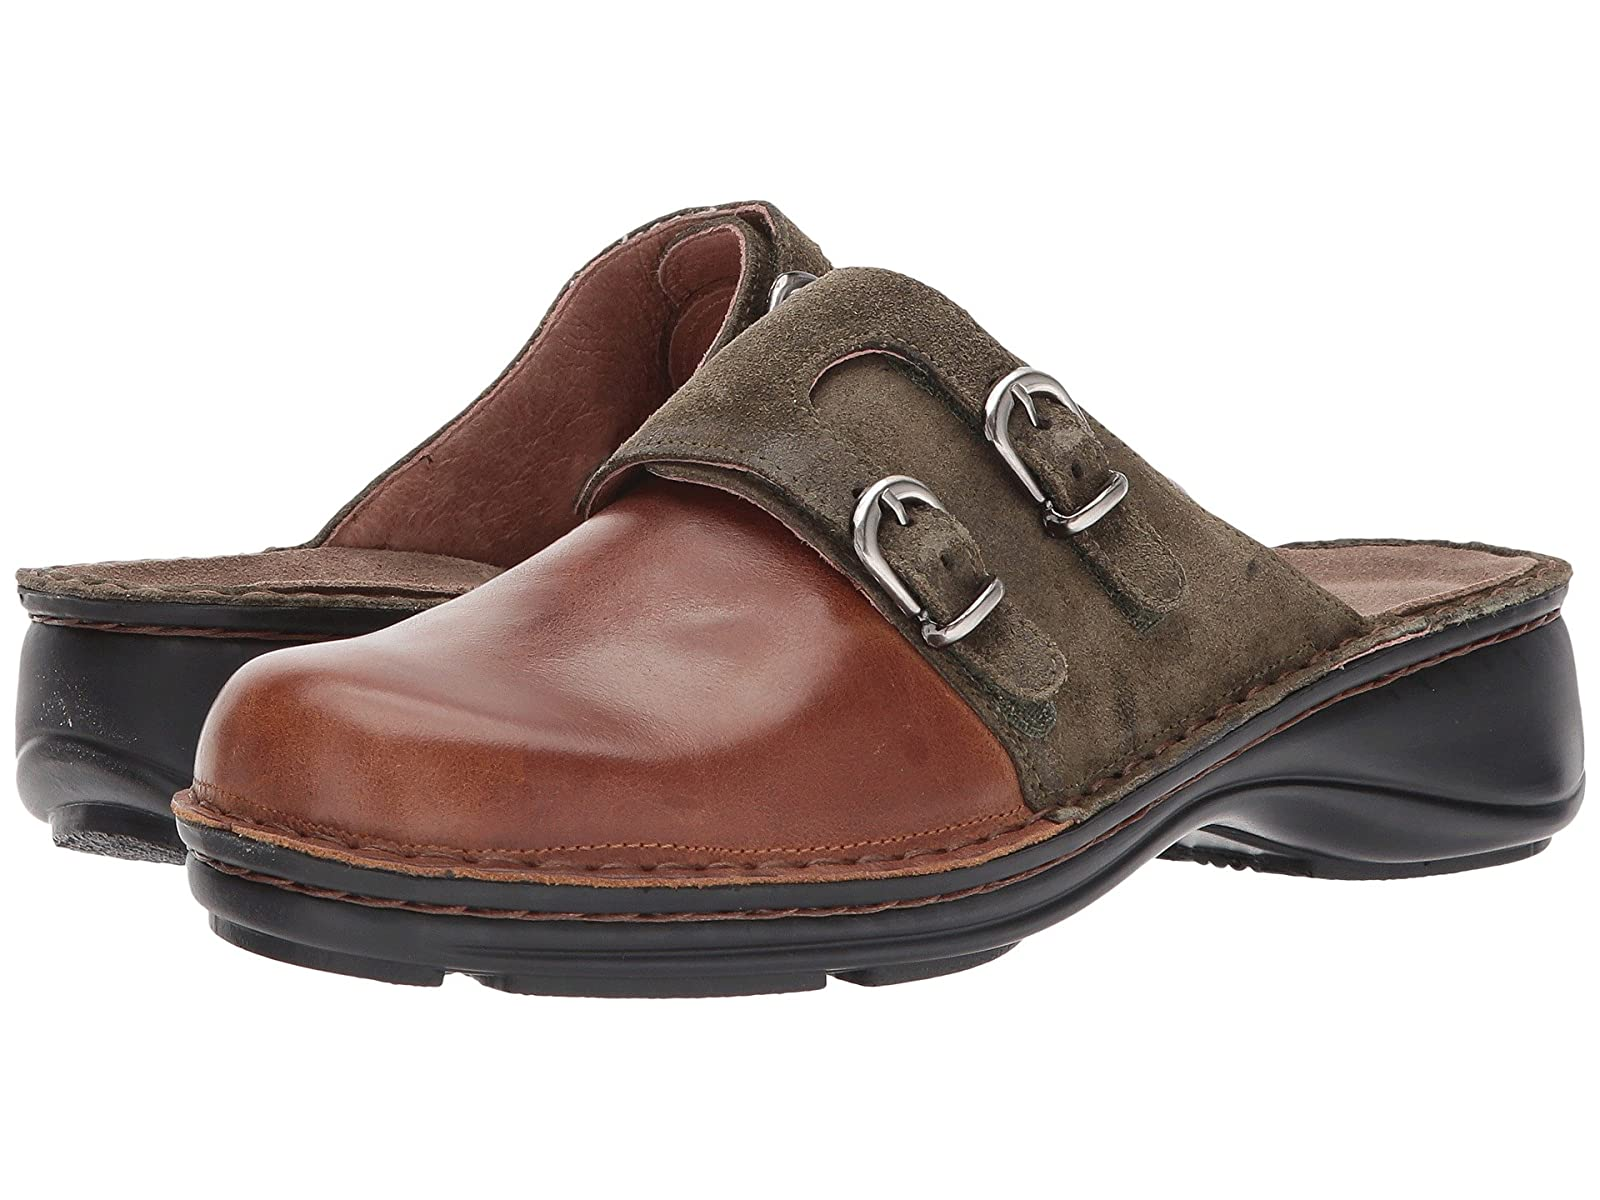 Naot LeilaniAtmospheric grades have affordable shoes